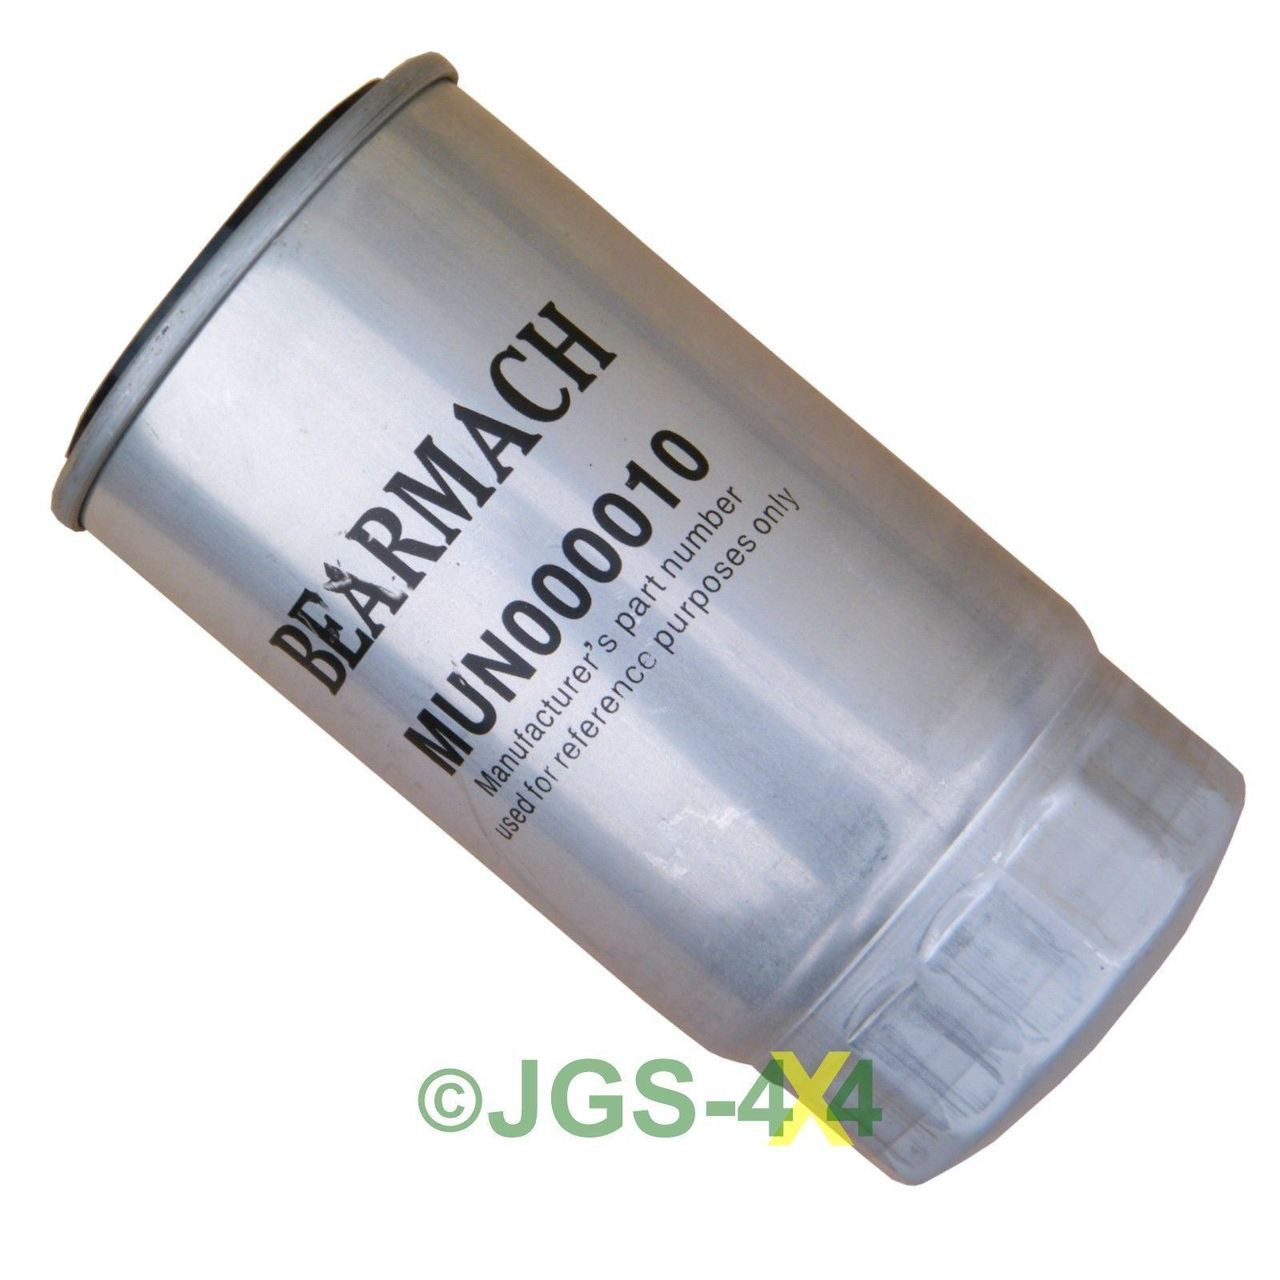 Land Rover Freelander 1 Diesel Fuel Filter 2.0 TD4 BMW Engine - MUN000010